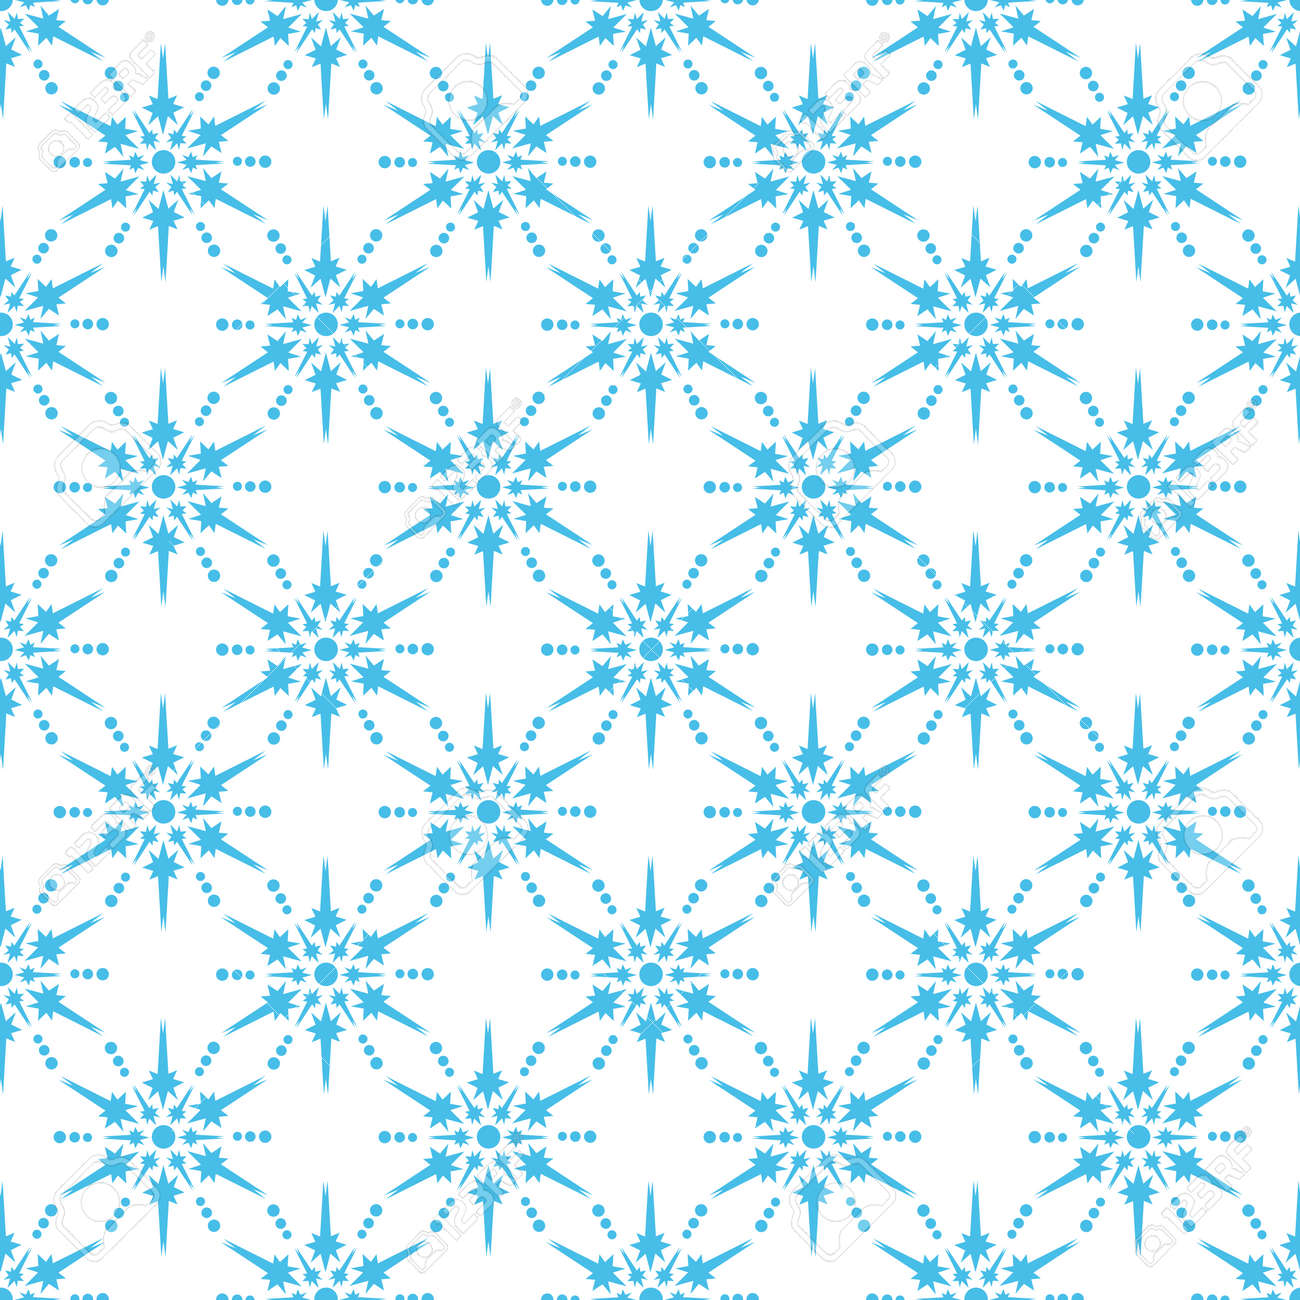 Seamless pattern with snowflakes. Flat design. Holiday New Year or Christmas vector illustration. Design element for banner, wallpaper, wrapping paper or fabric. - 135783896